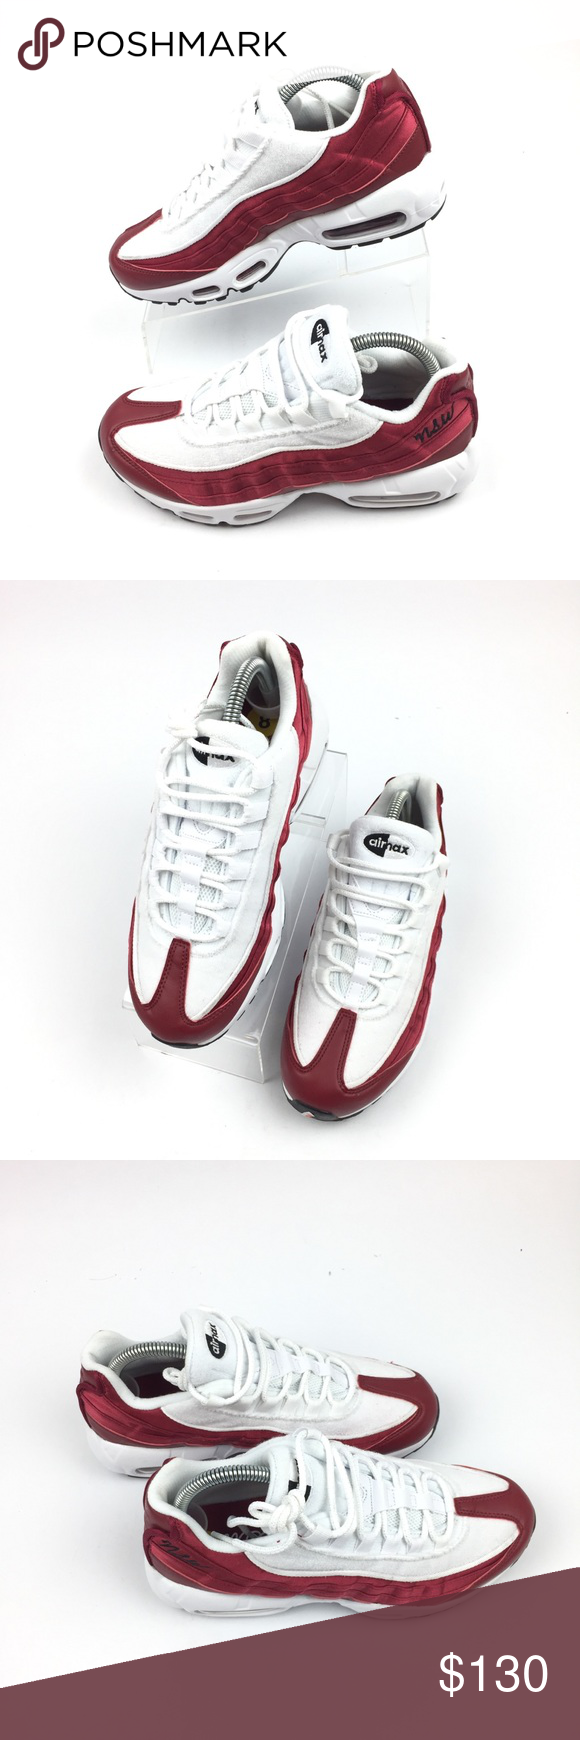 2ec318fc3c Nike Air Max 95 LX Satin Terry Shoes Red Crush Nike Air Max 95 LX Satin